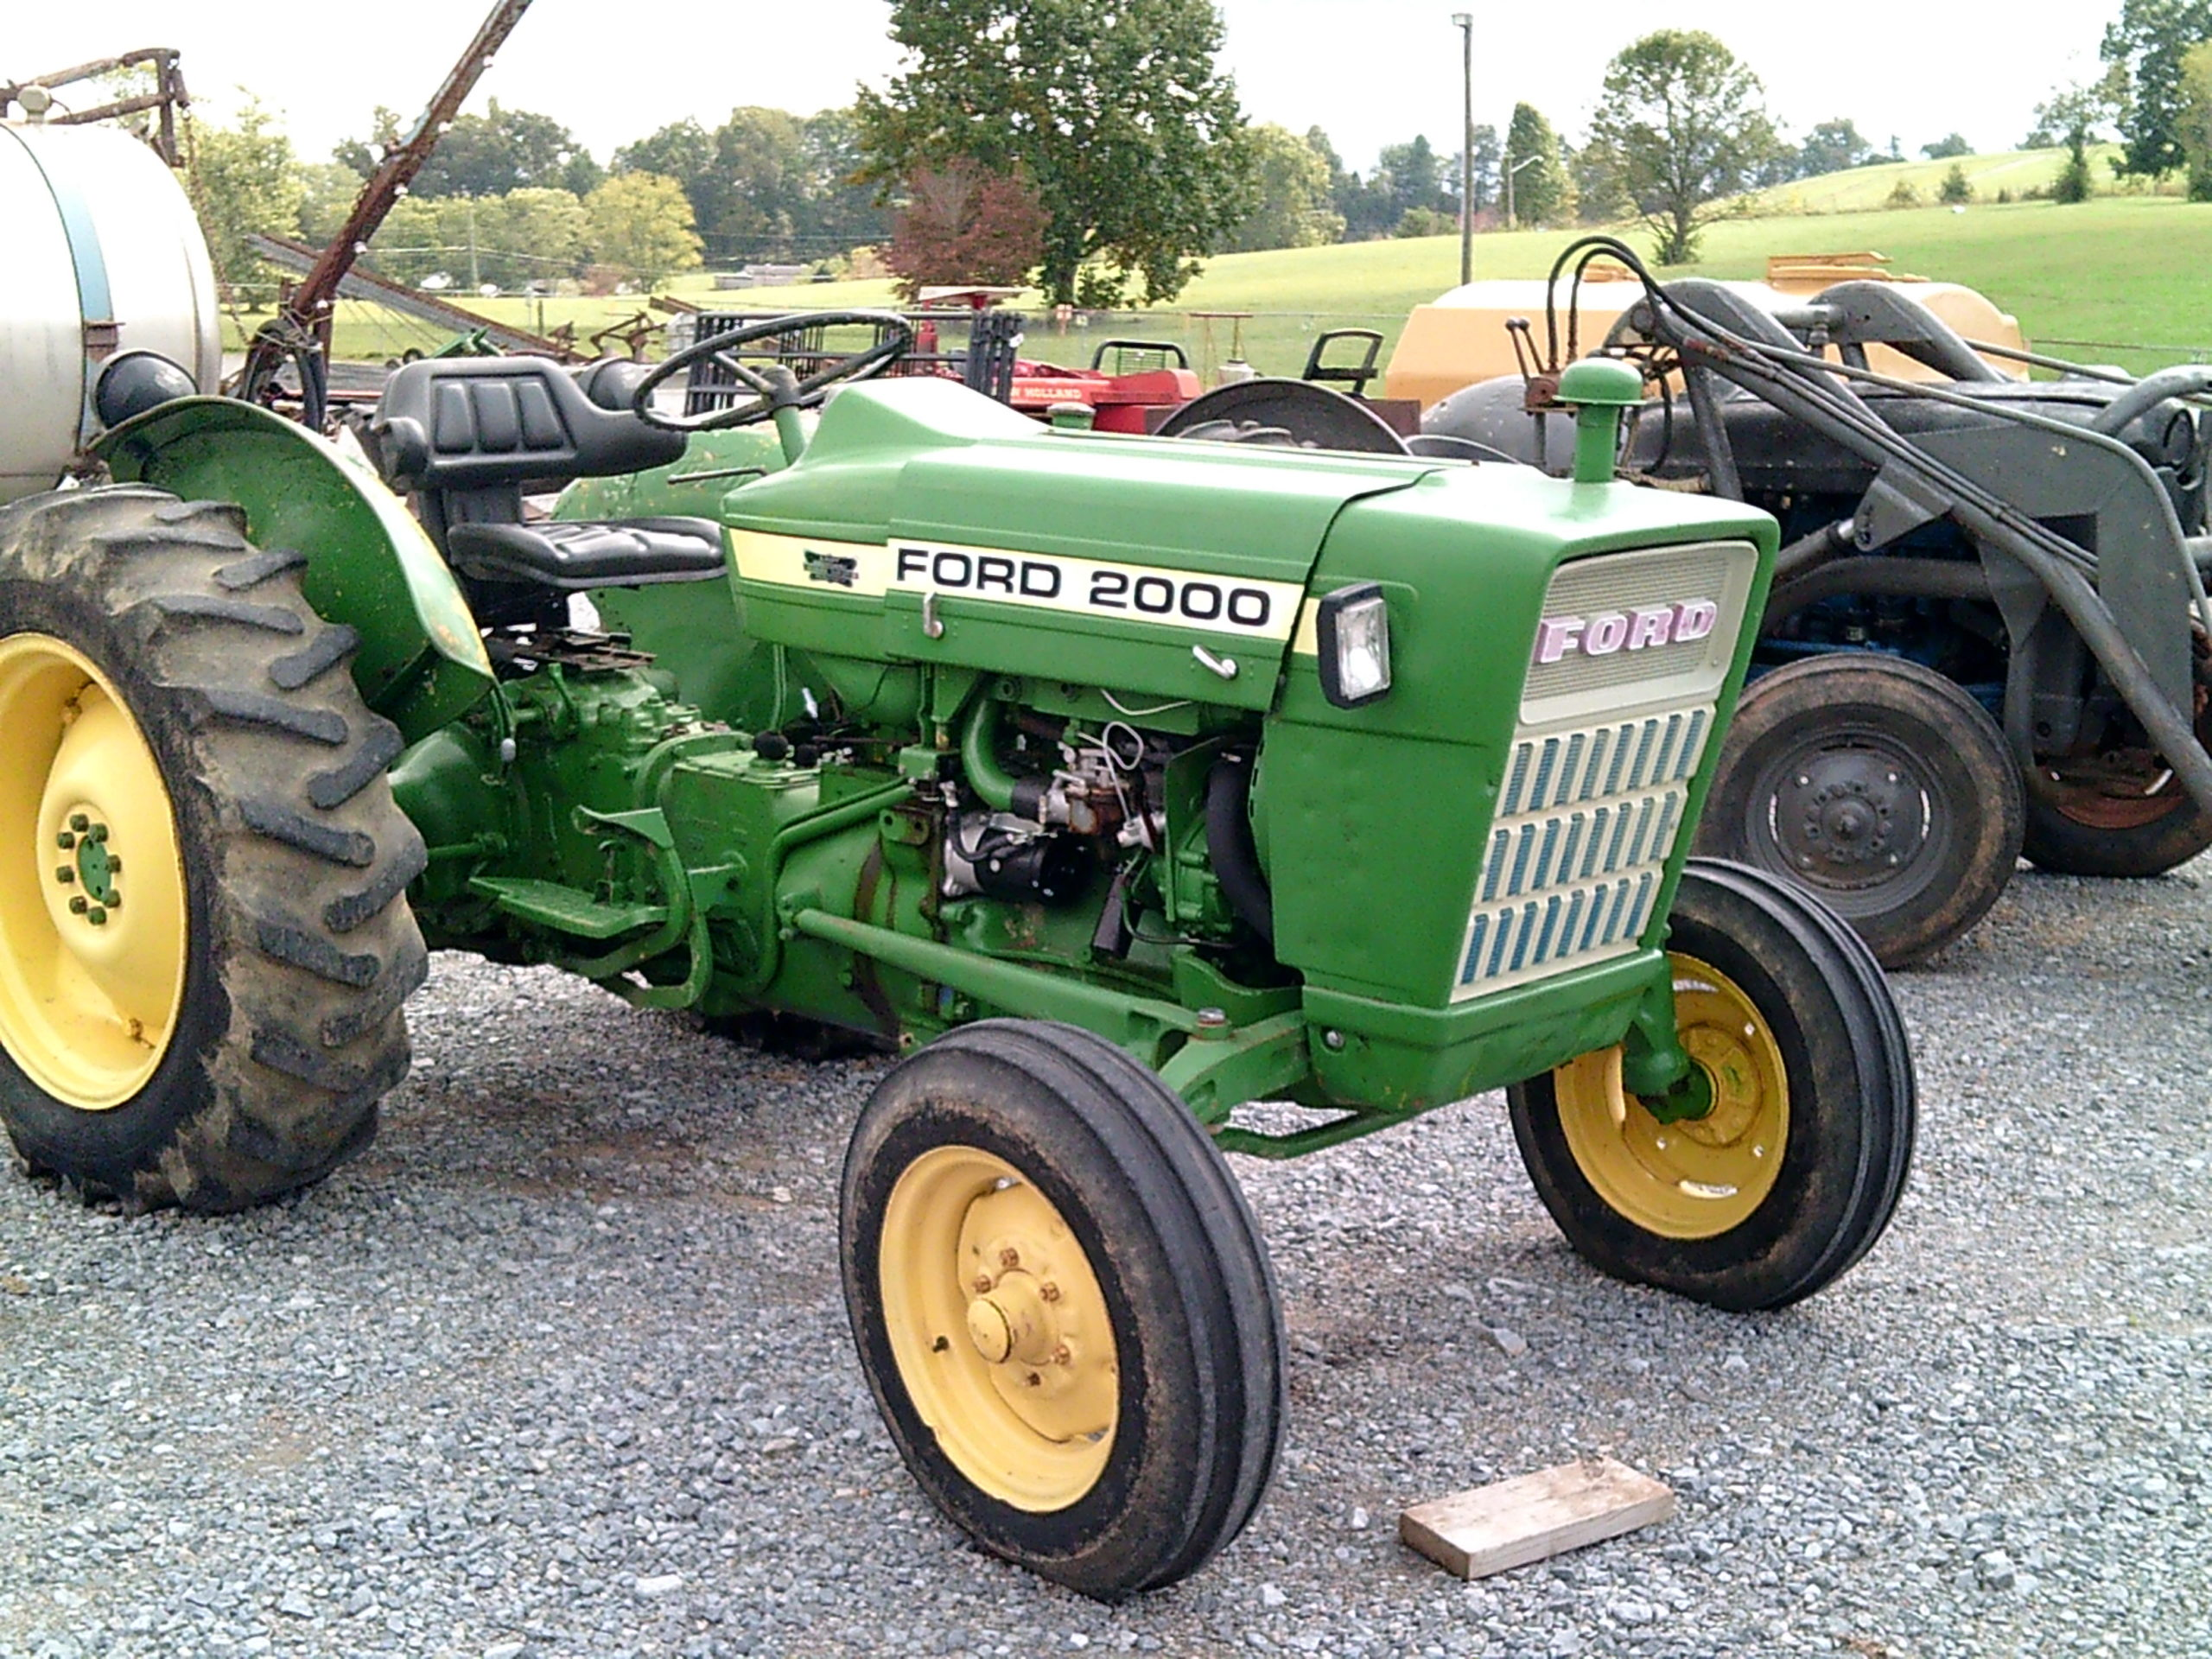 FORD 2000 TRACTOR Image